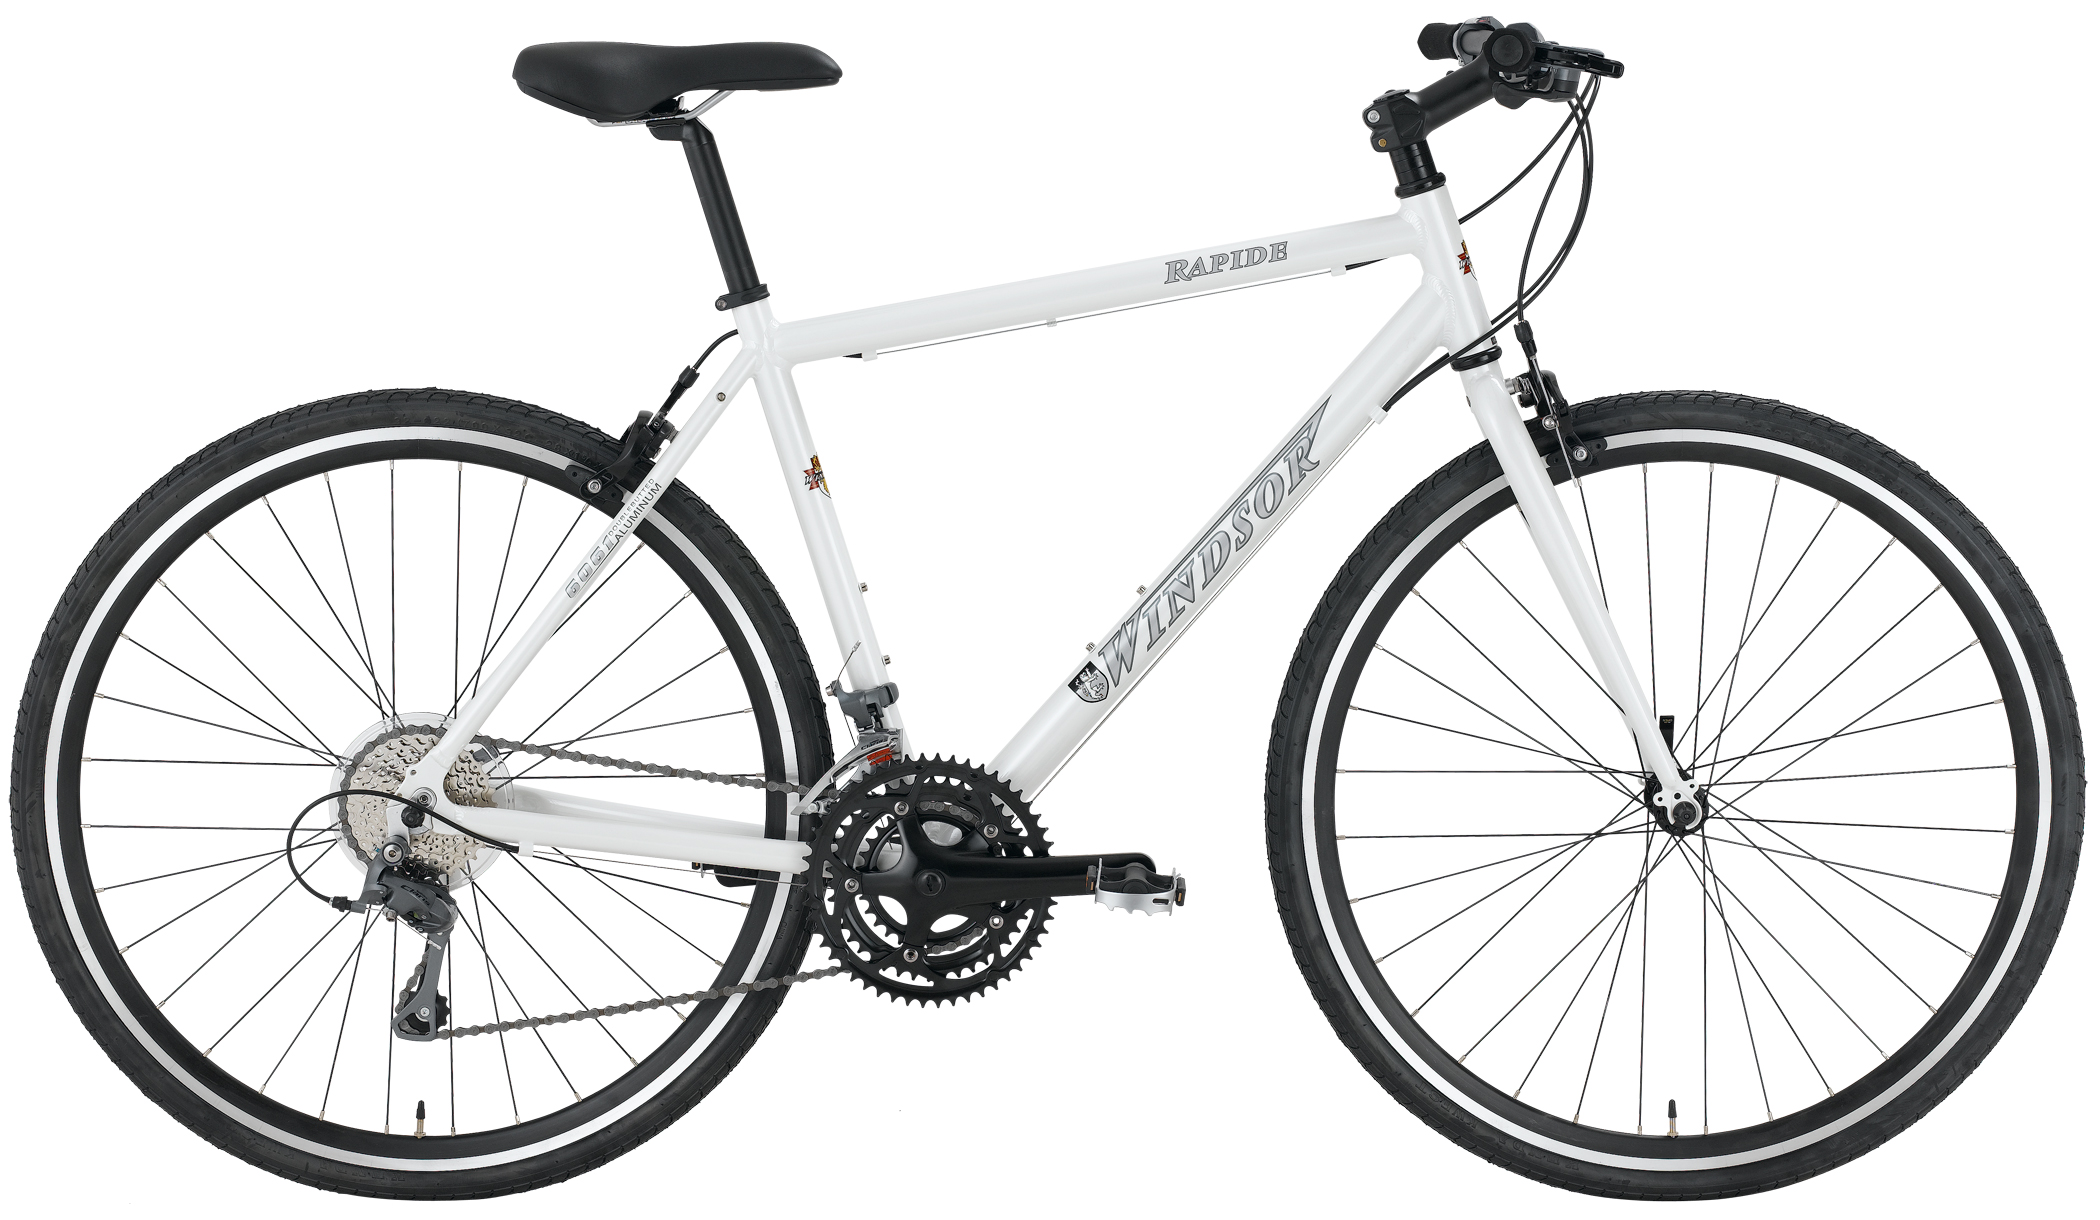 RAPIDE - SHIMANO ALUMINUM 24sp PERFORMANCE HYBRID